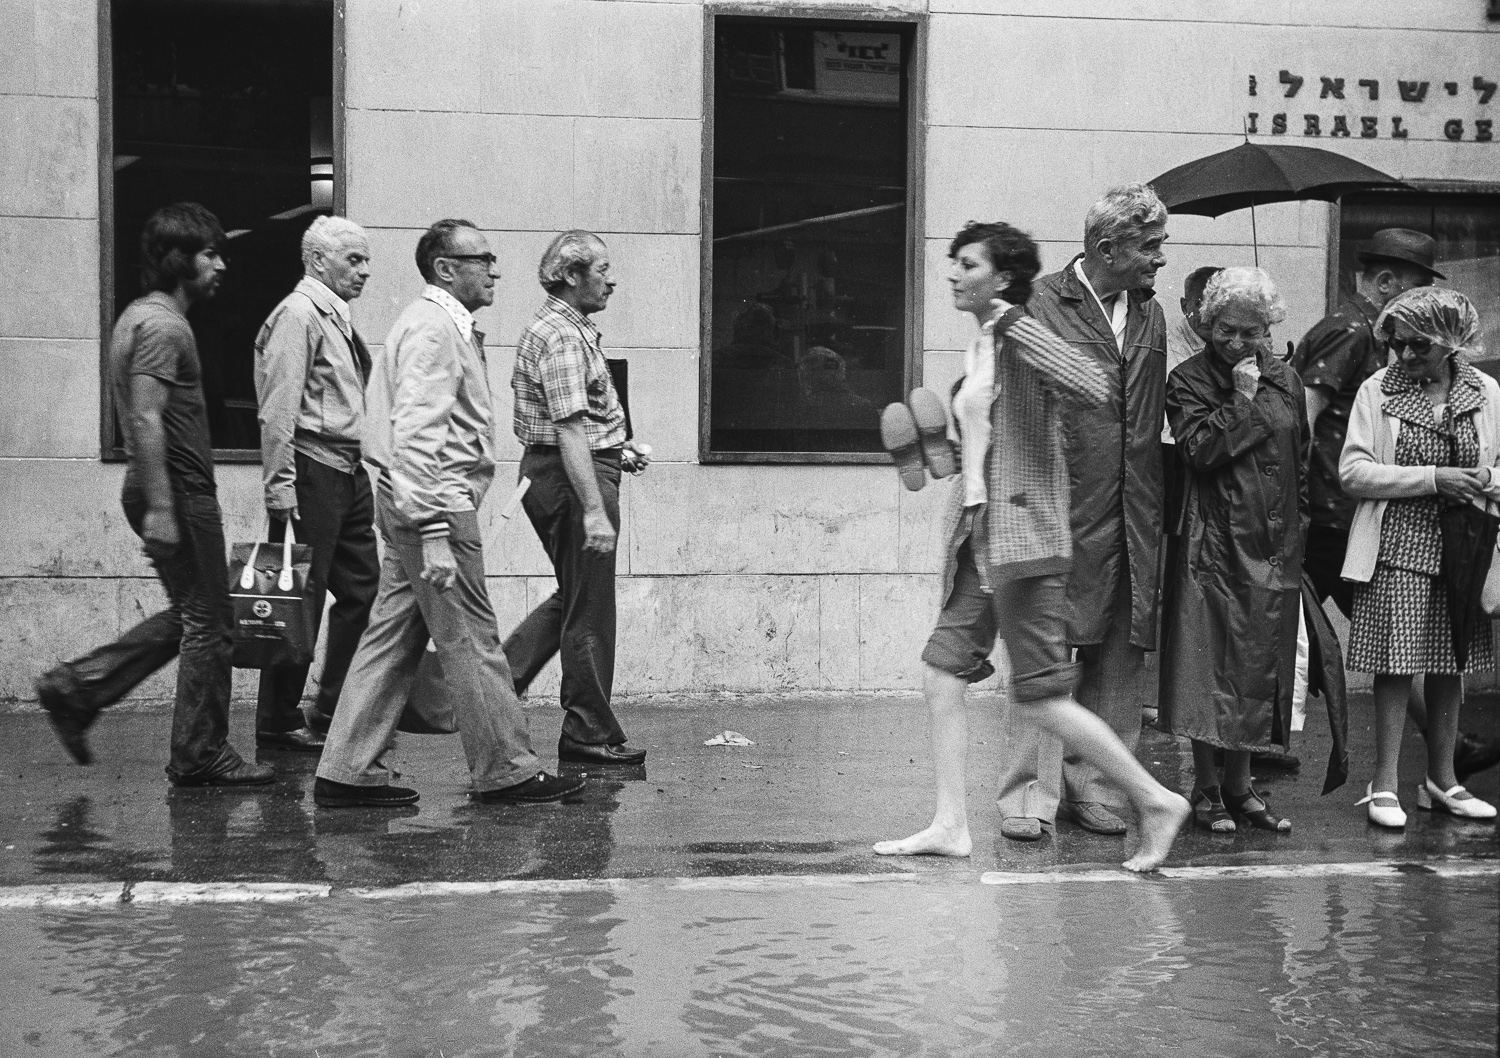 Barefoot in the rain - Haifa, 1976